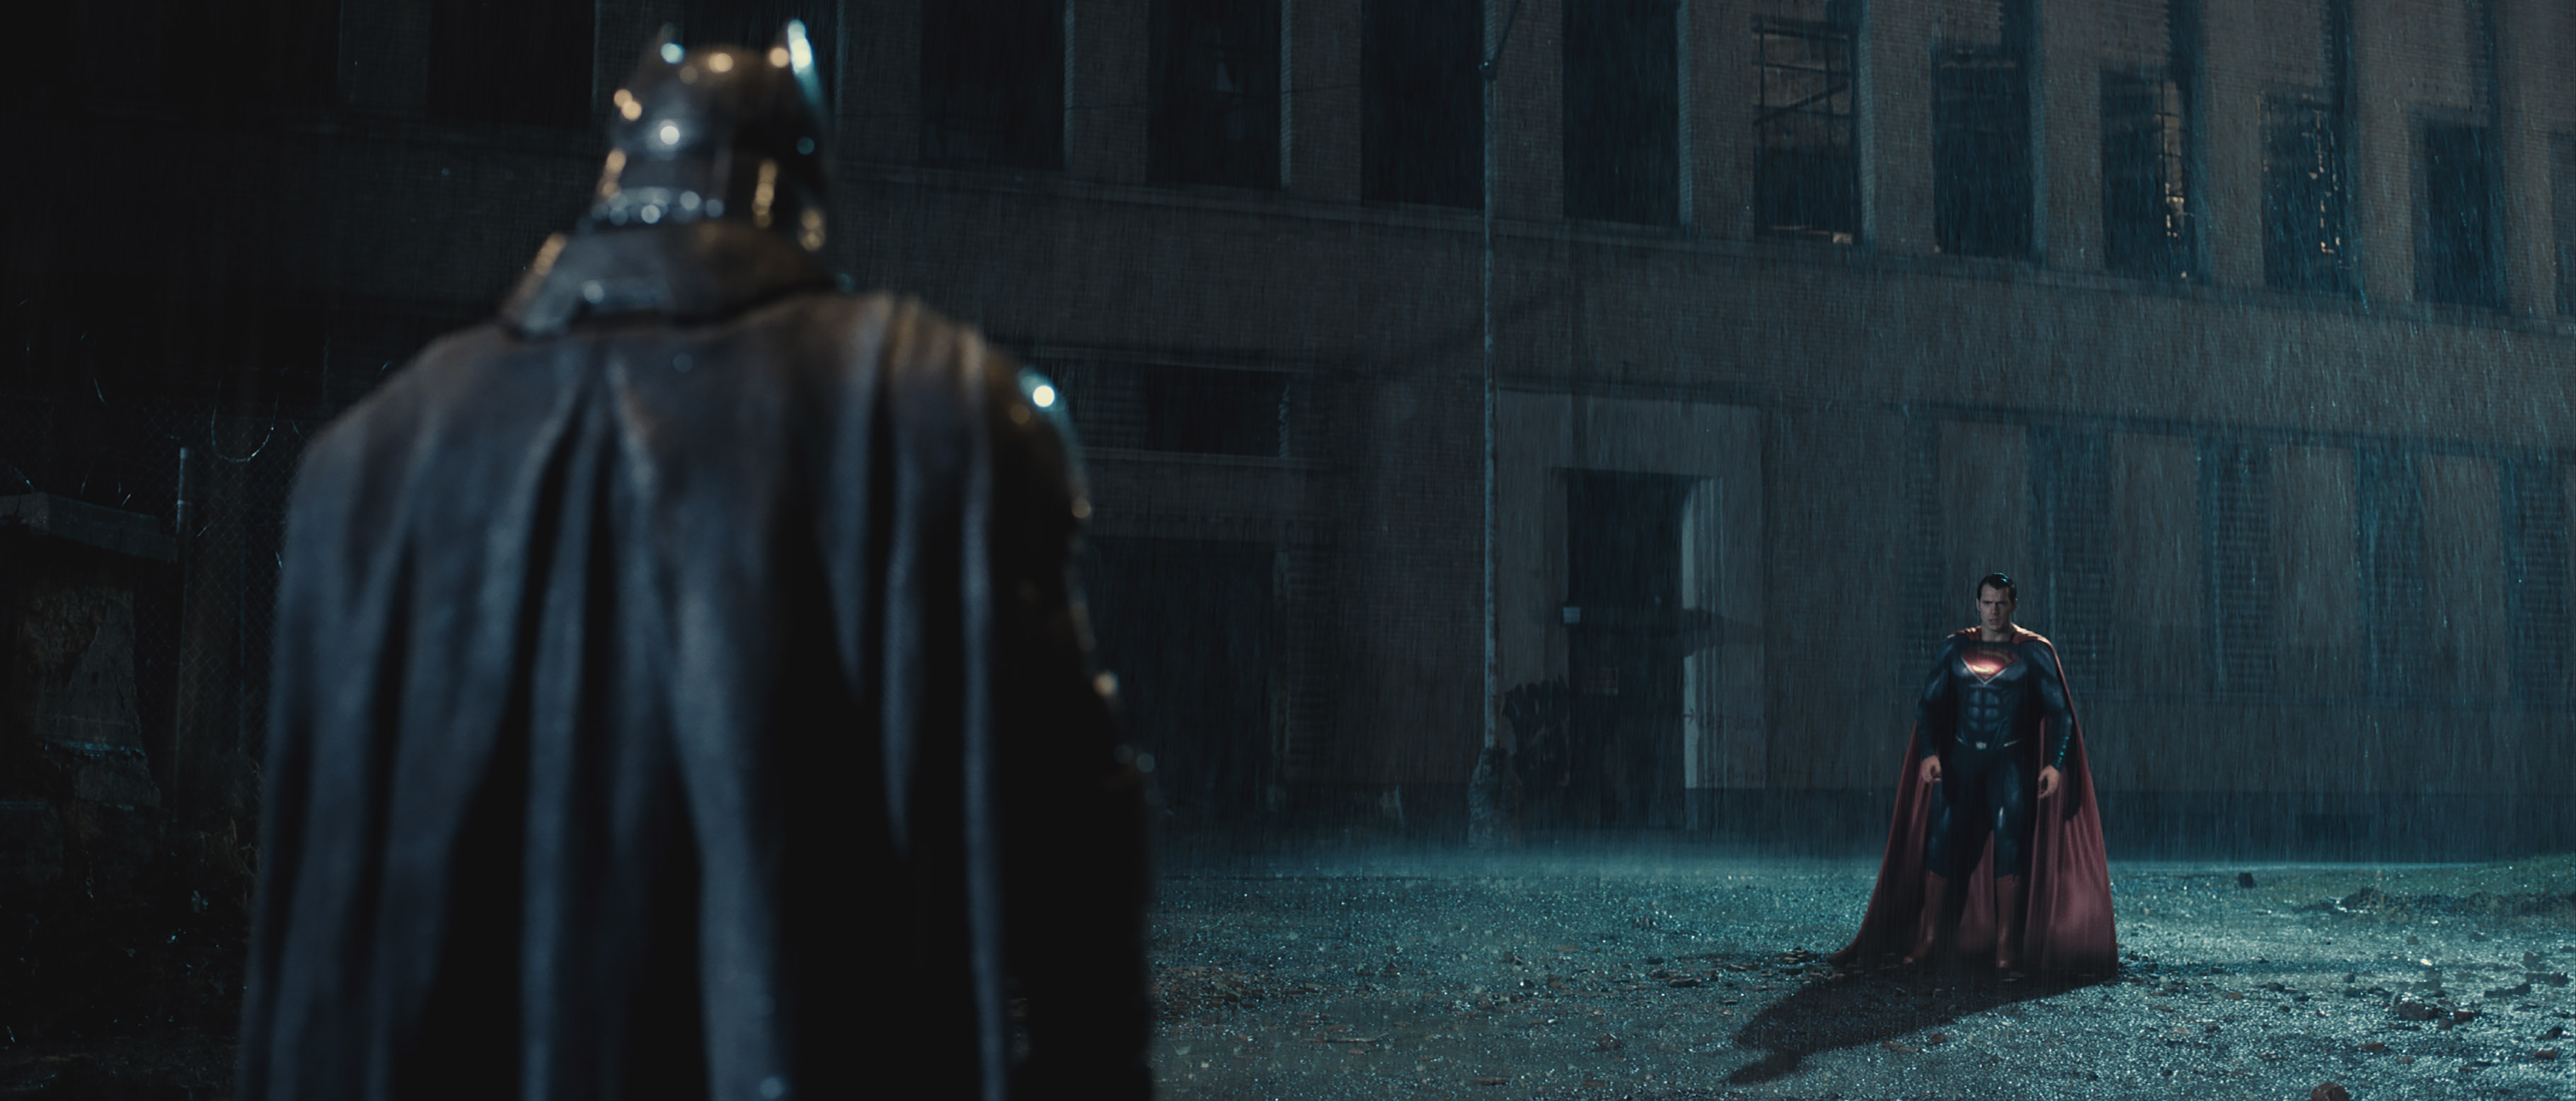 Ben Affleck as Batman and Henry Cavill as Superman. Photo: Courtesy of Warner Bros. Pictures/ TM & © DC Comics.